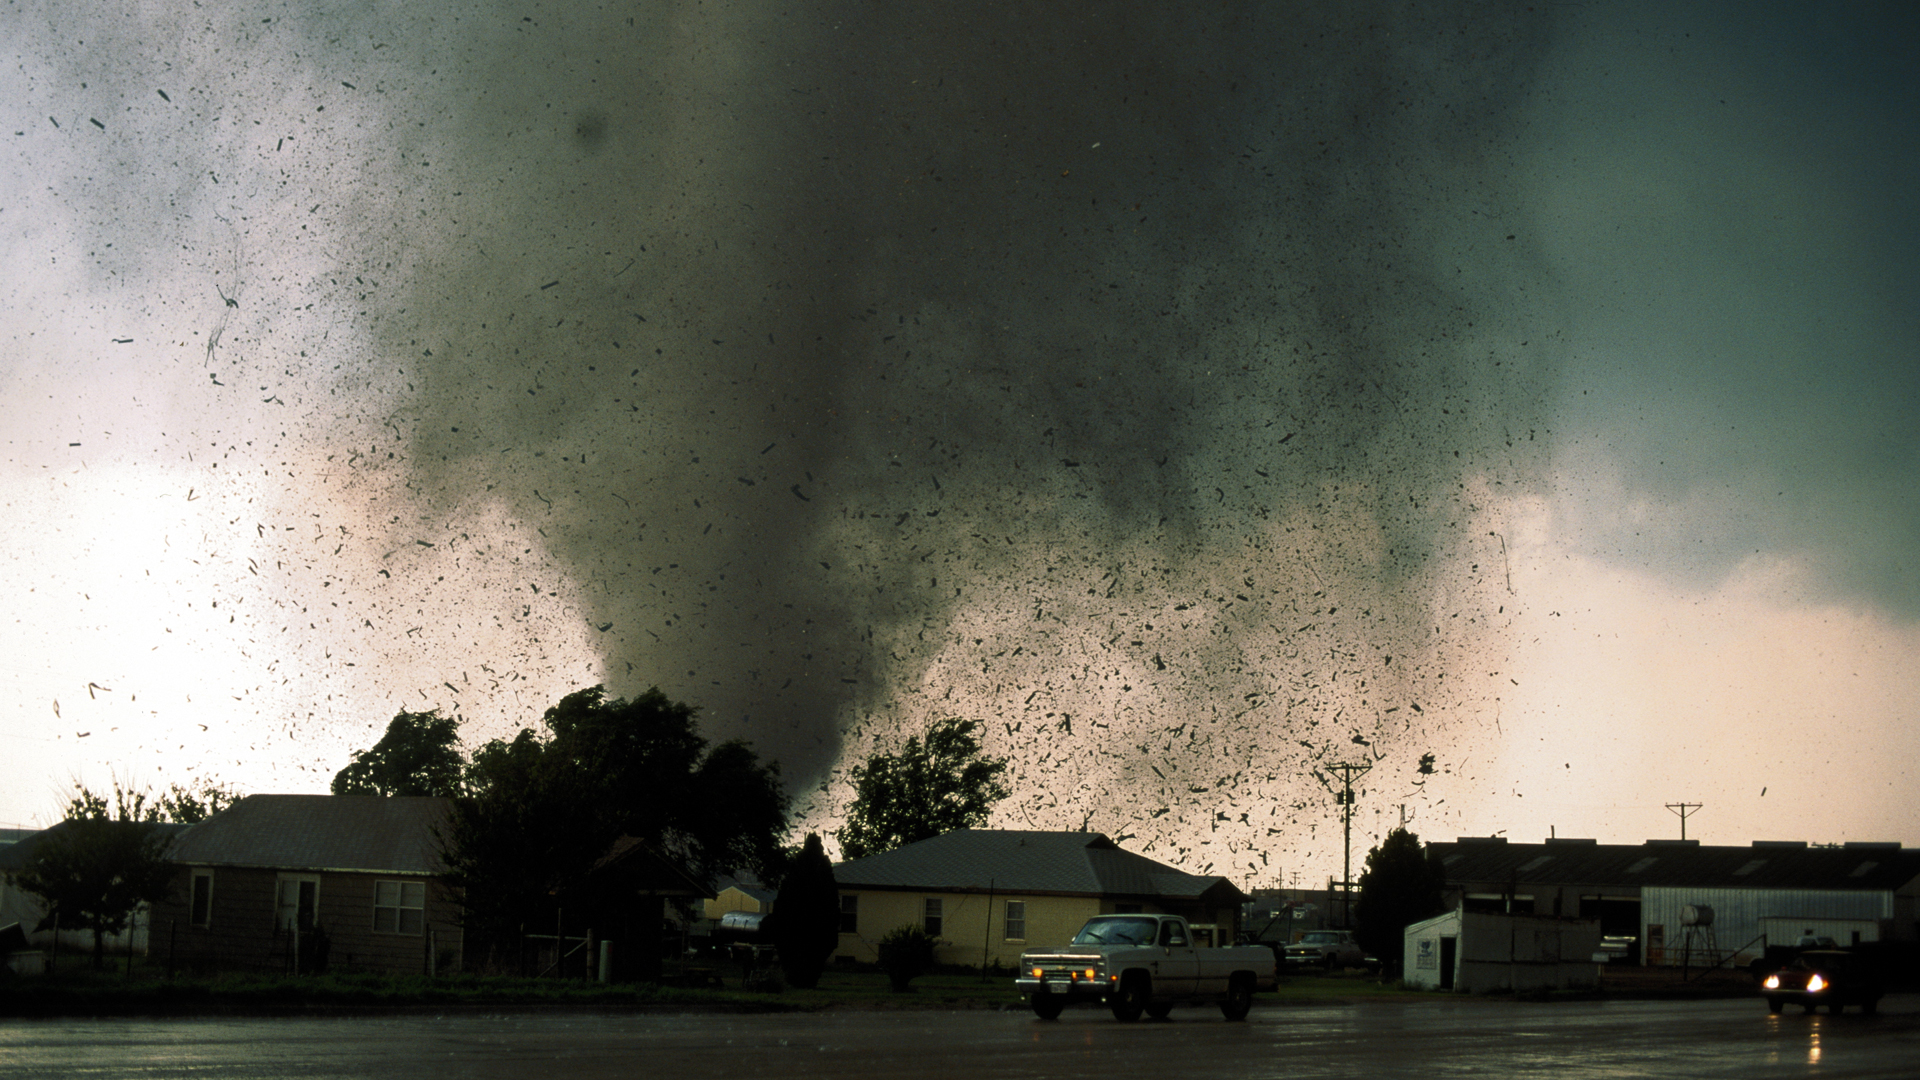 On the United States was struck by a powerful tornado ...